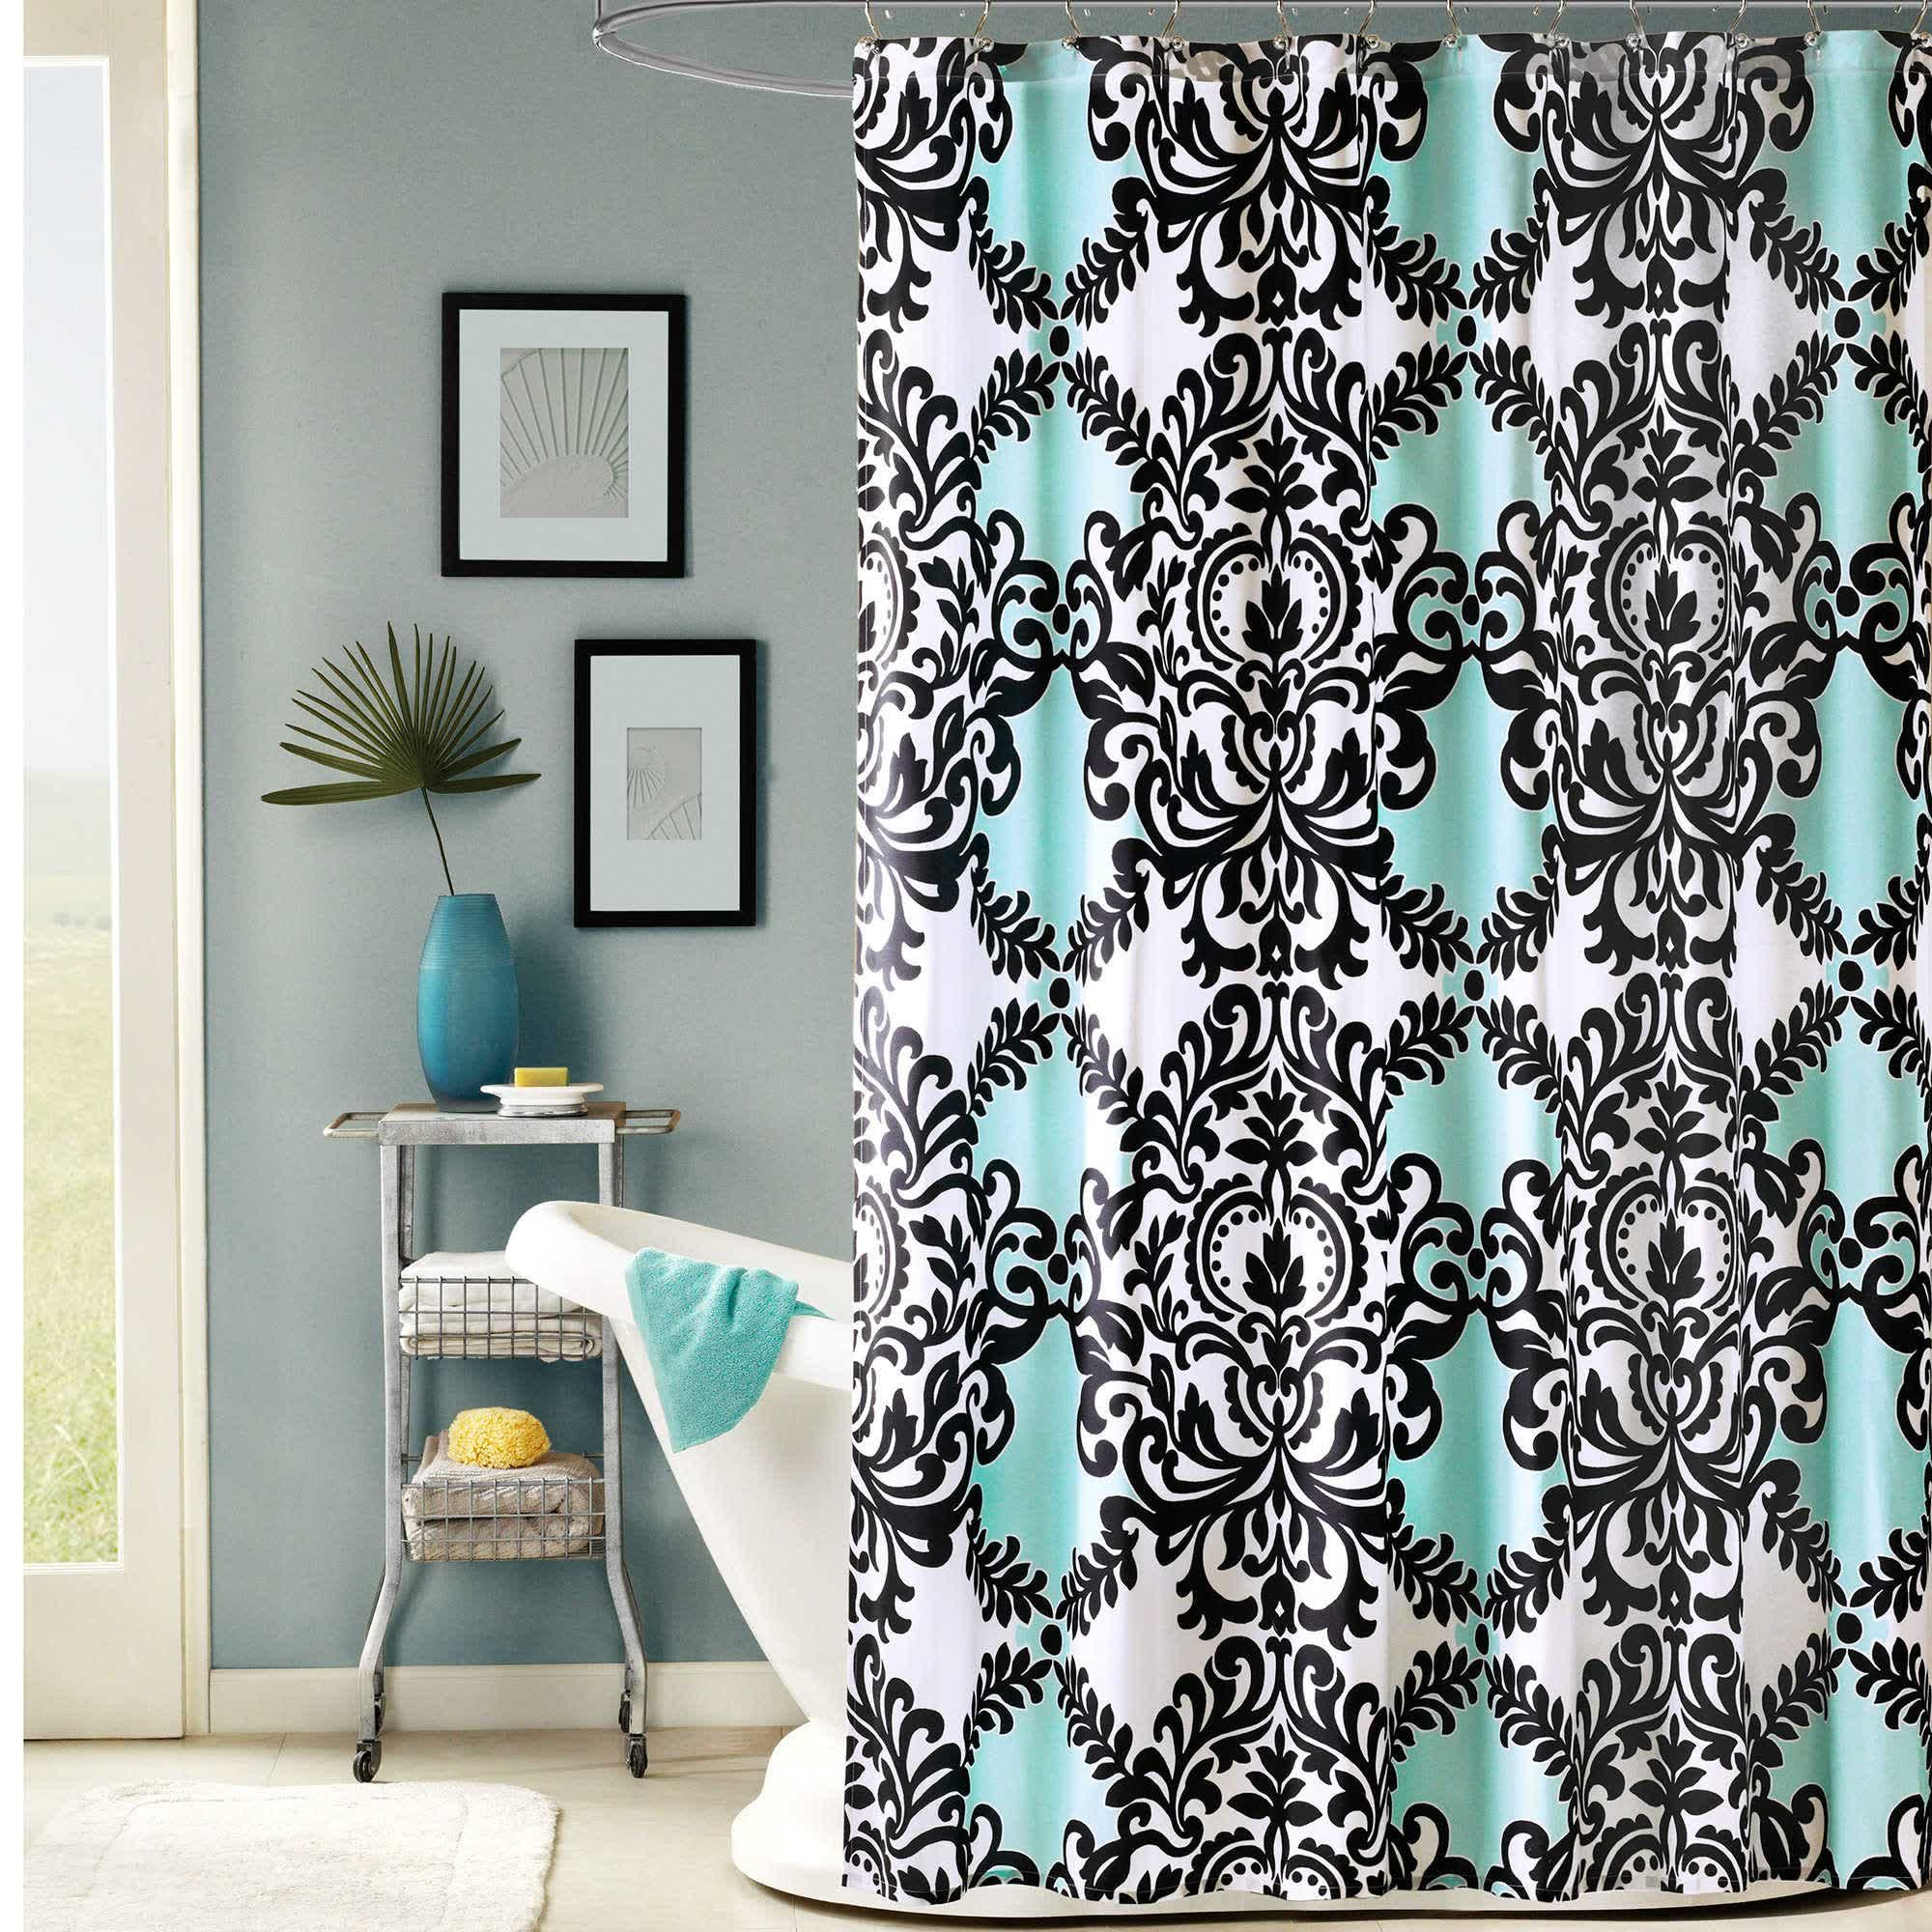 Smart Tips Of Using Cloth Shower Curtains With Images Teal